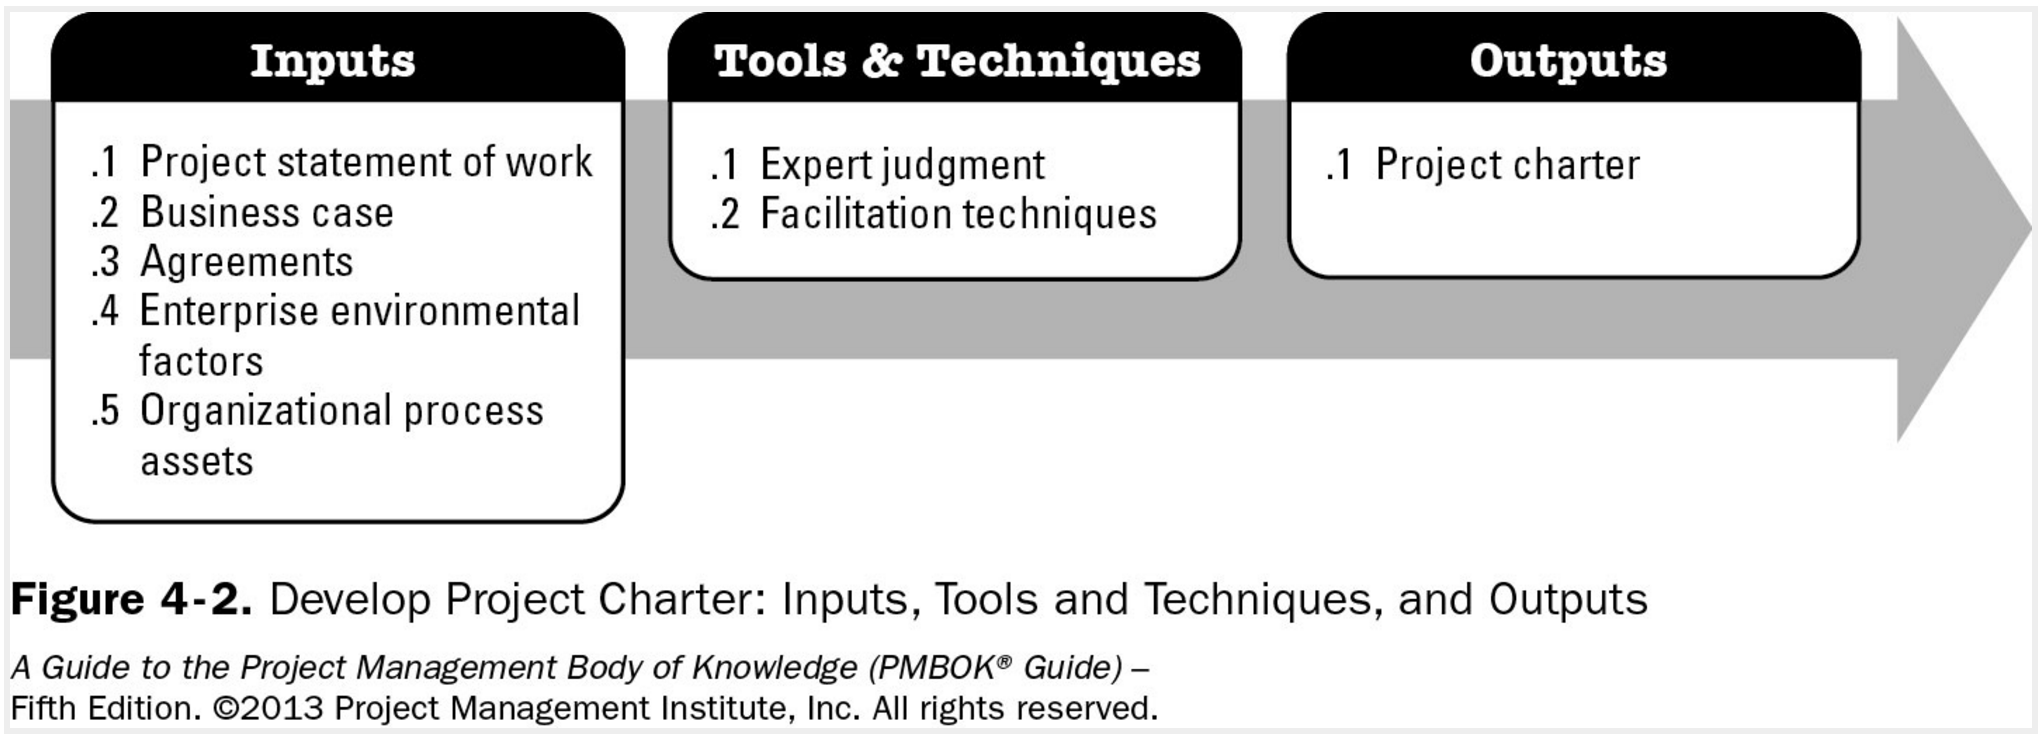 develop project charter process ITTO